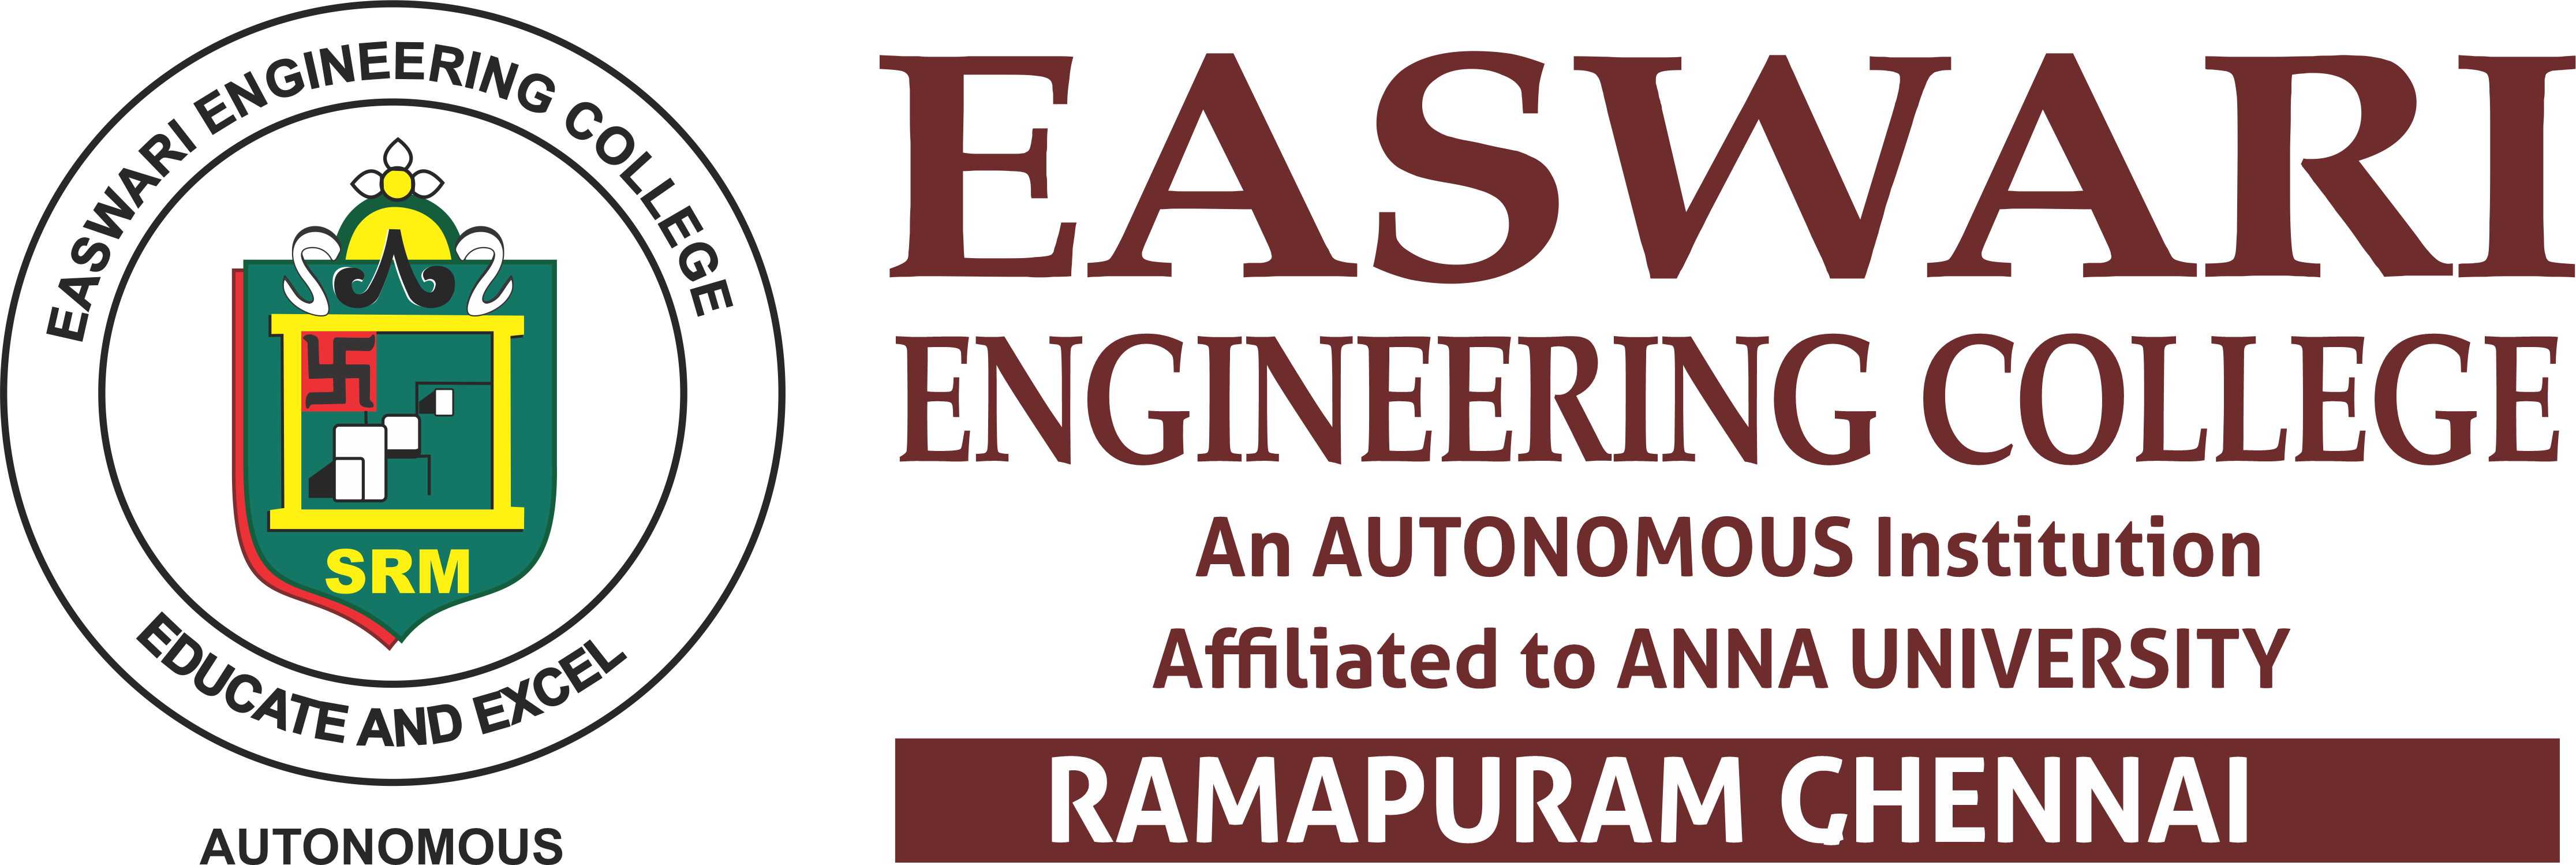 Civil Engineering | SRM Easwari